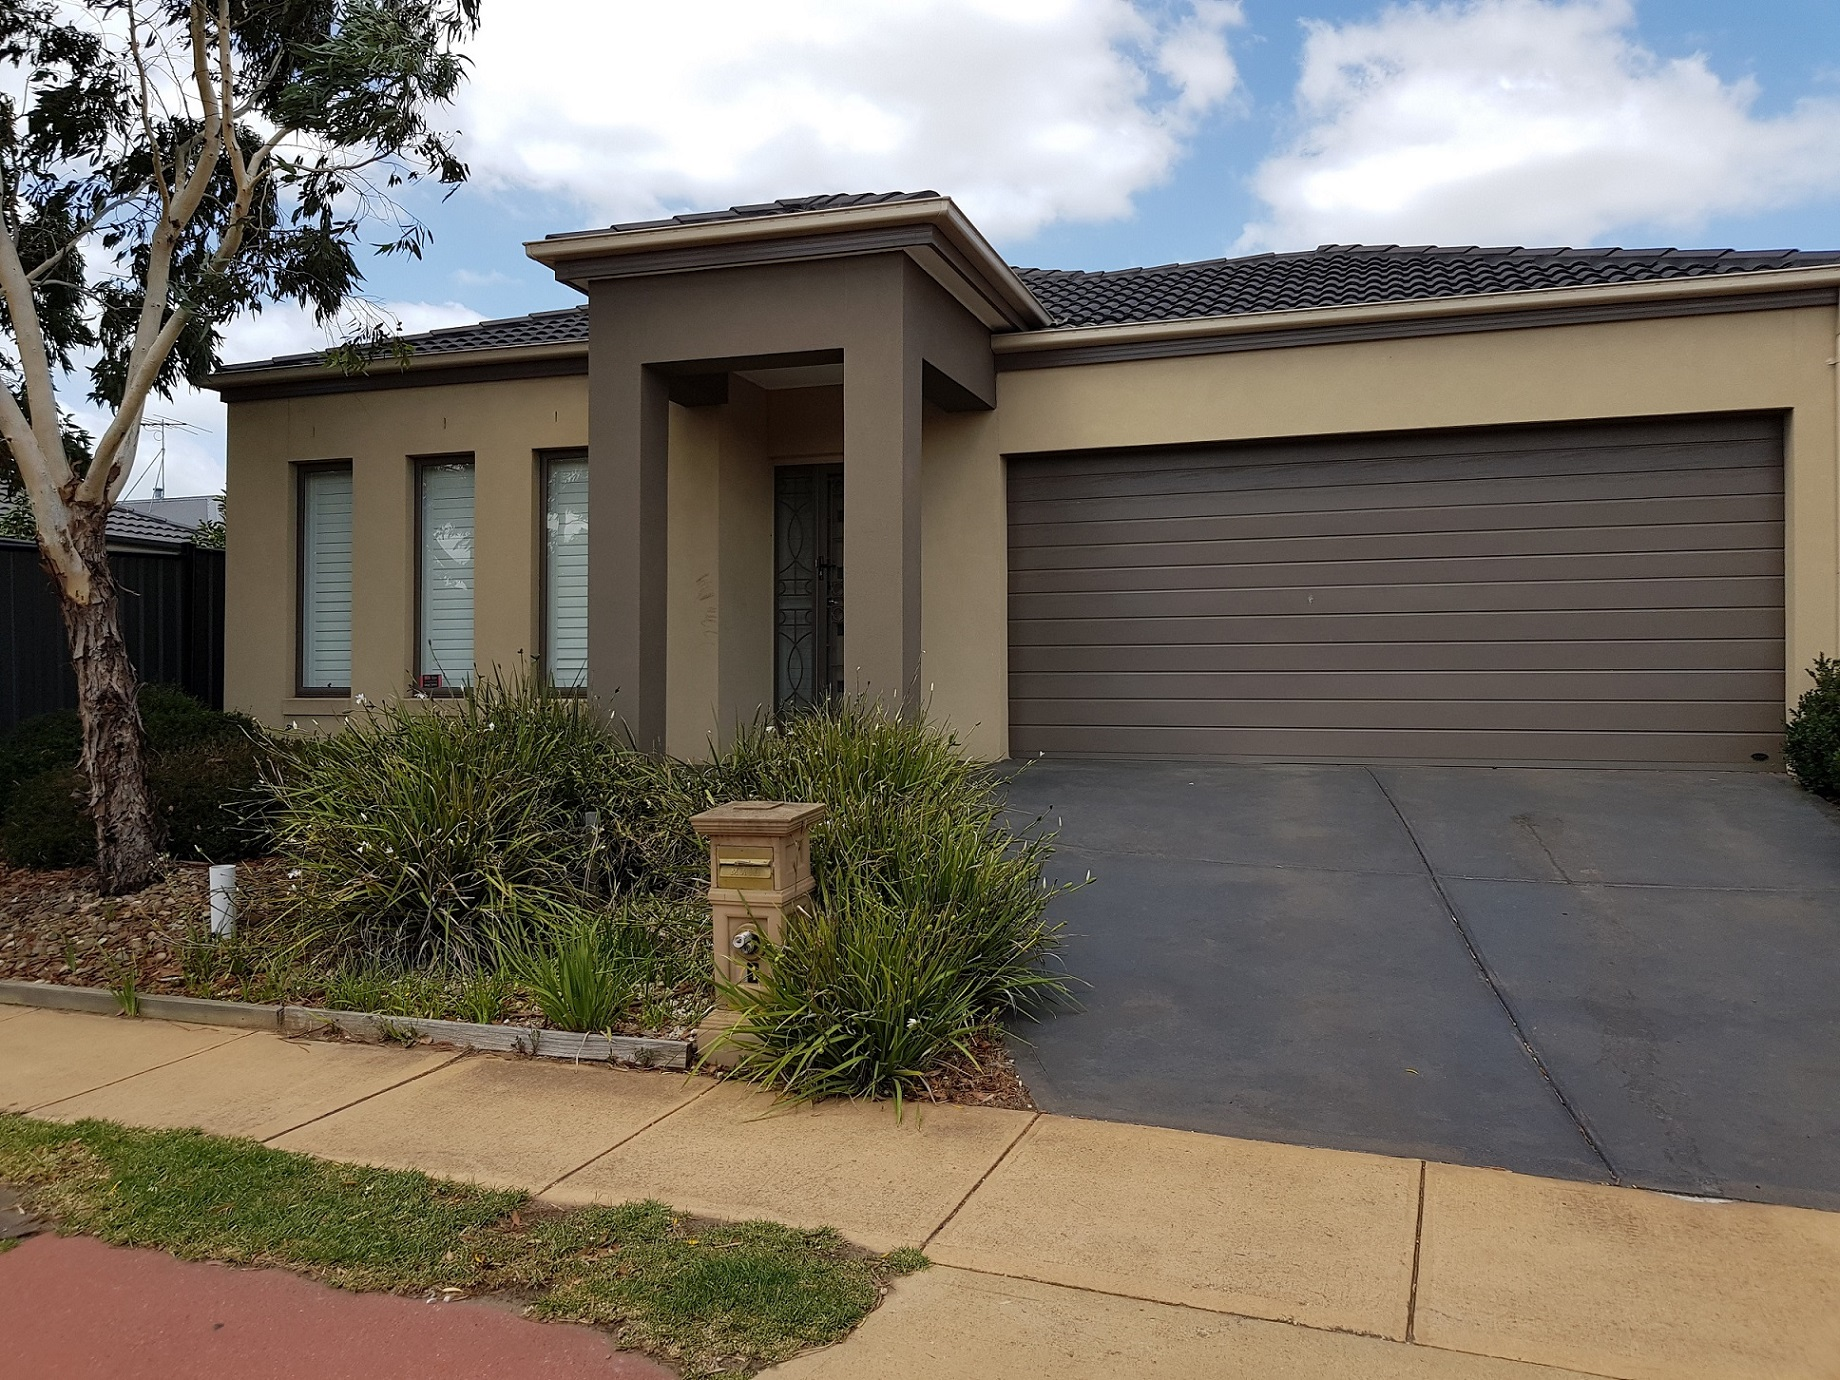 Property Report for 71 Tom Roberts Parade, Point Cook VIC